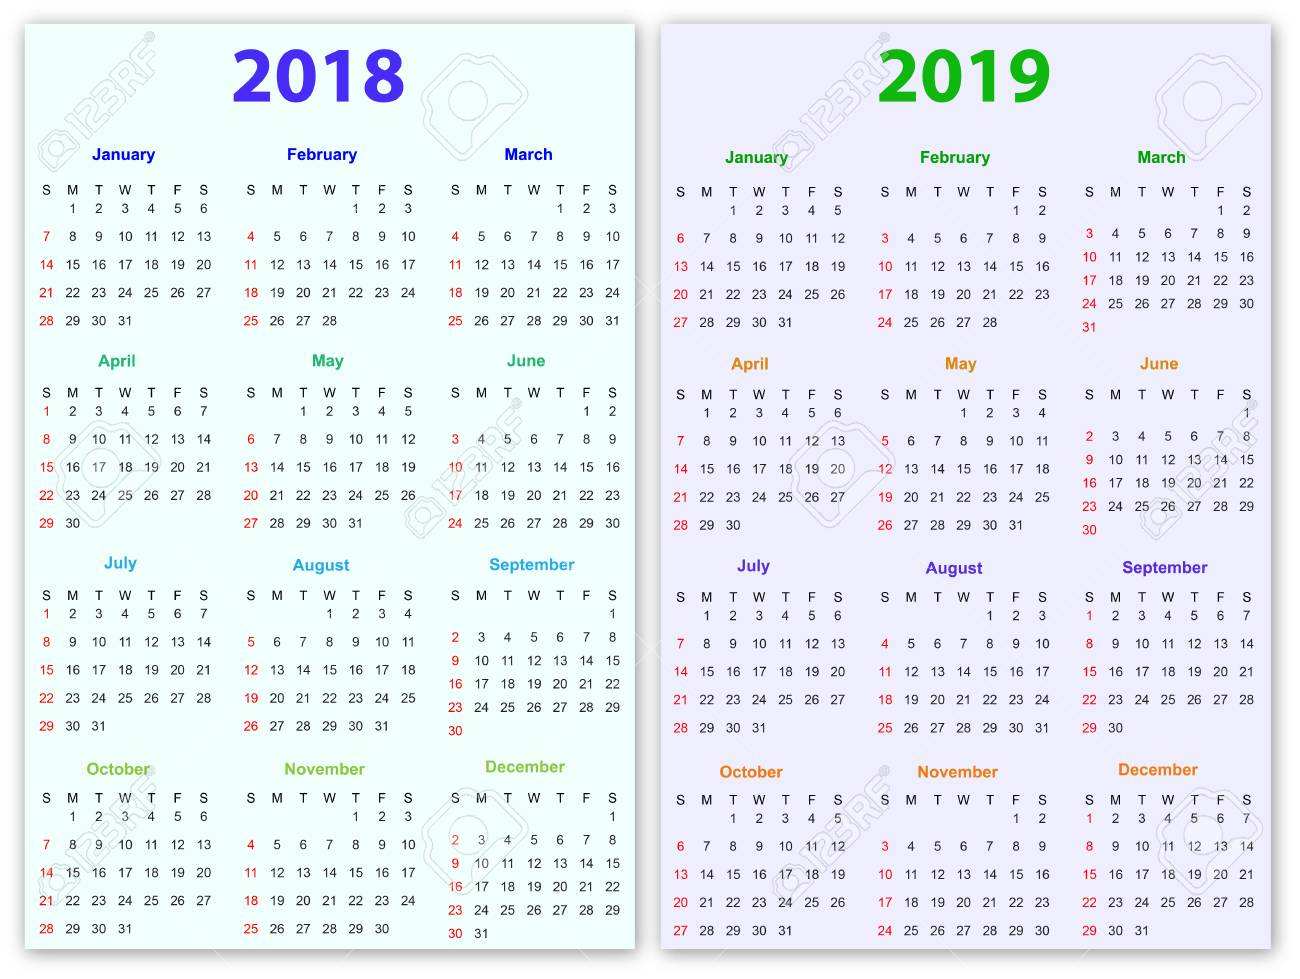 12 months calendar design 2018 2019 printable and editable stock vector 85979006